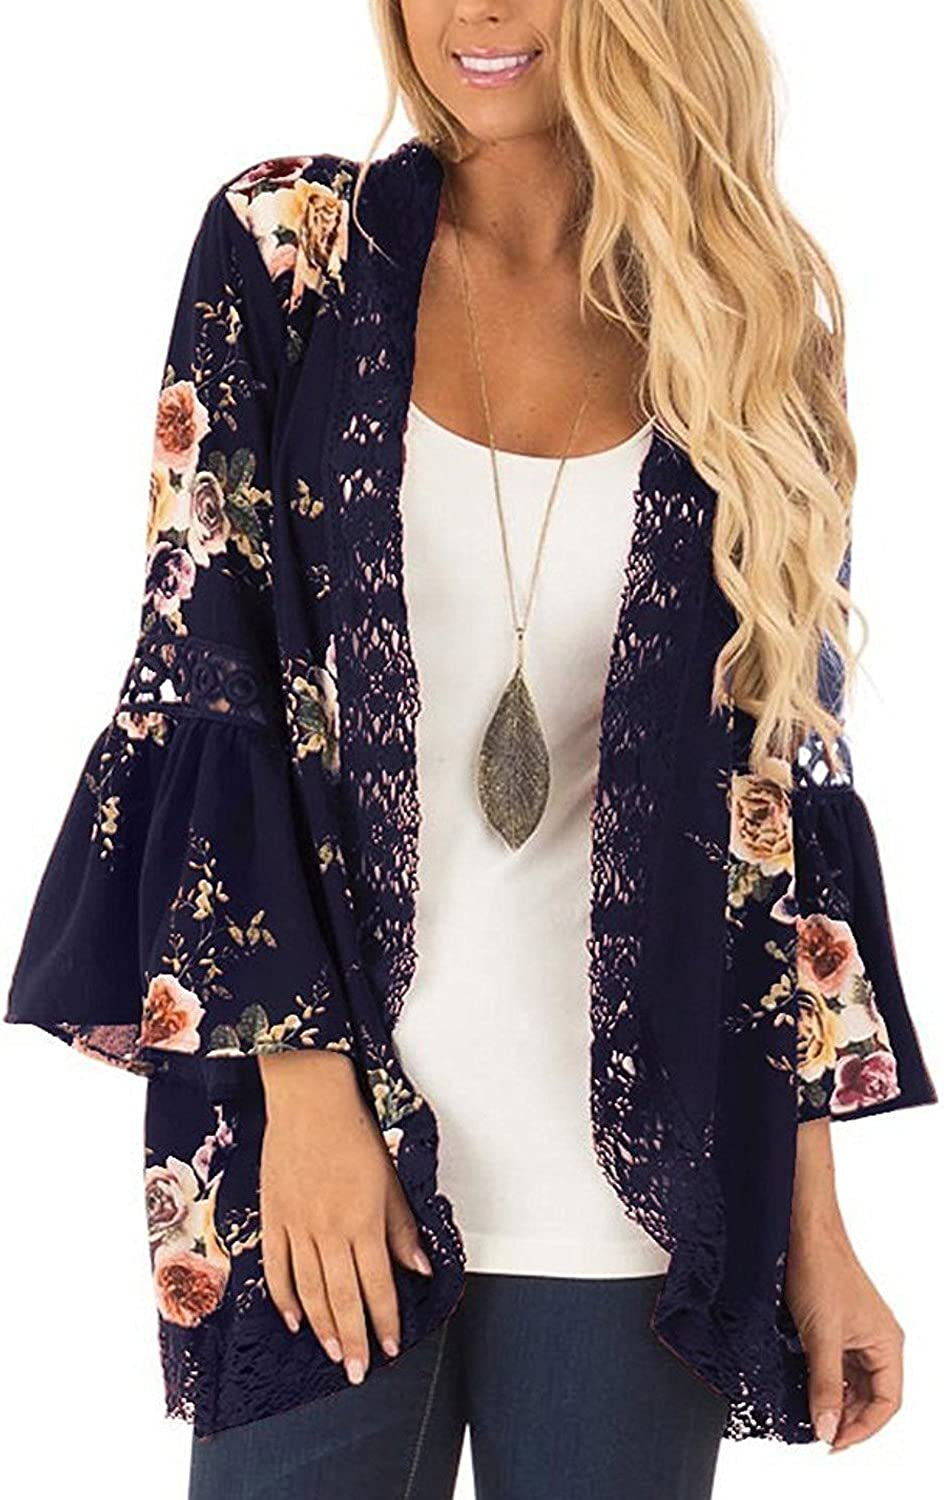 Womens Kimono Cardigans Casual Loose Open Front Cover Up Tops Shrug Beach Shawl